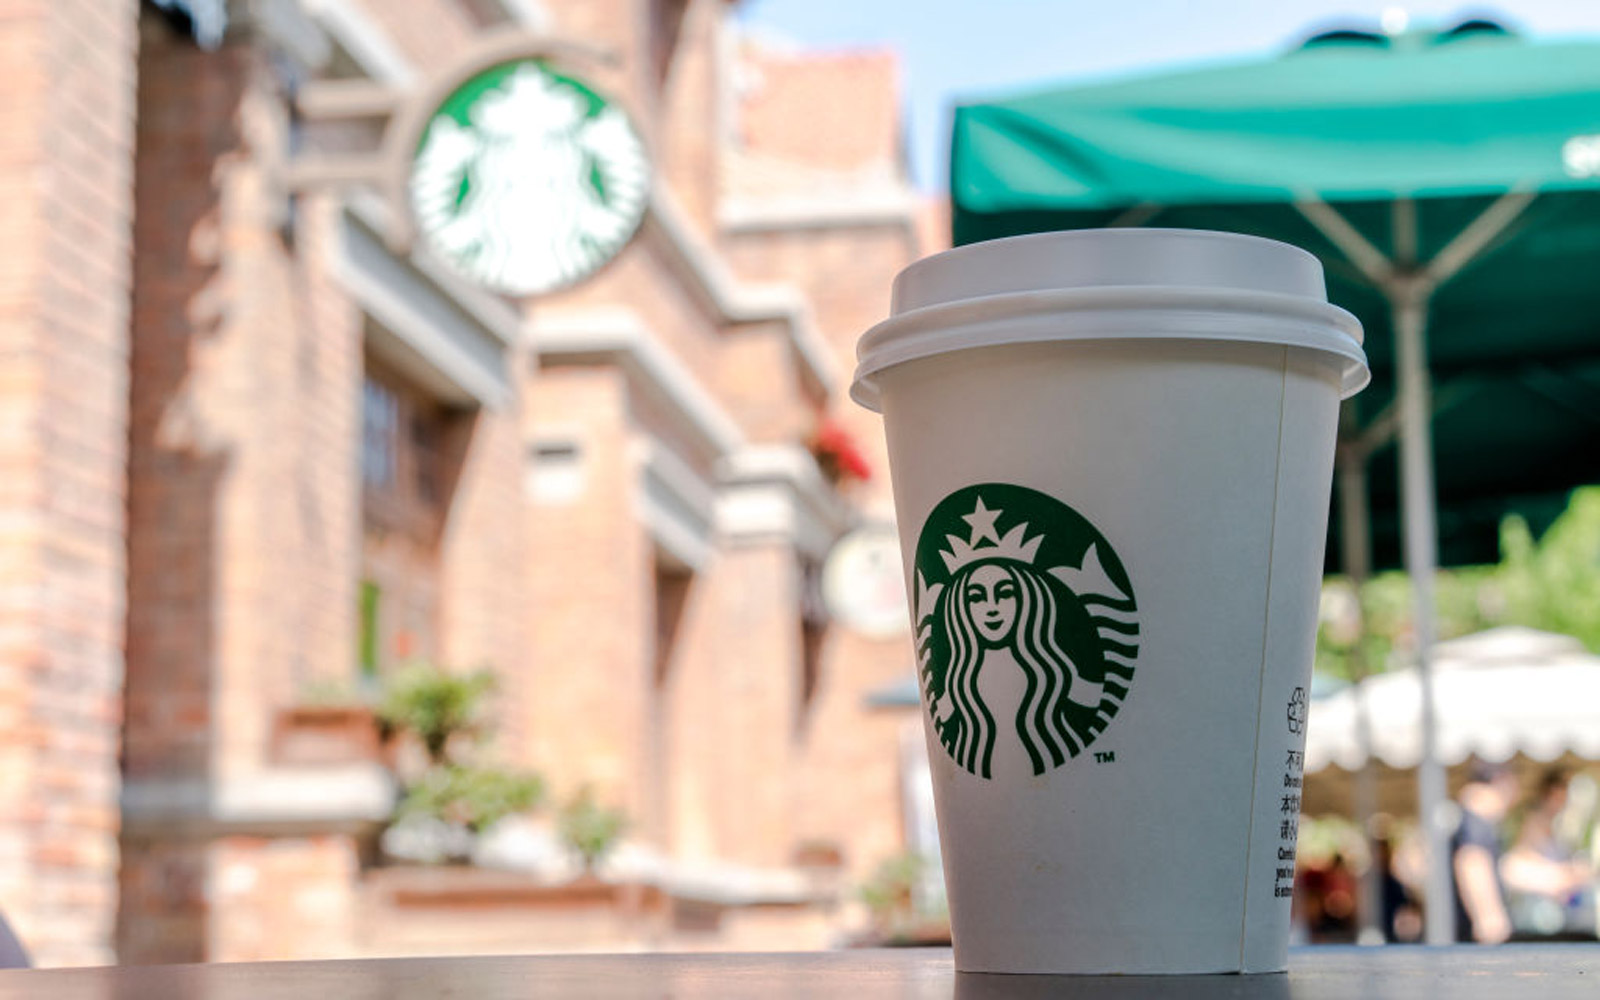 Starbucks Raises Drink Prices as Pumpkin Spice Latte Returns